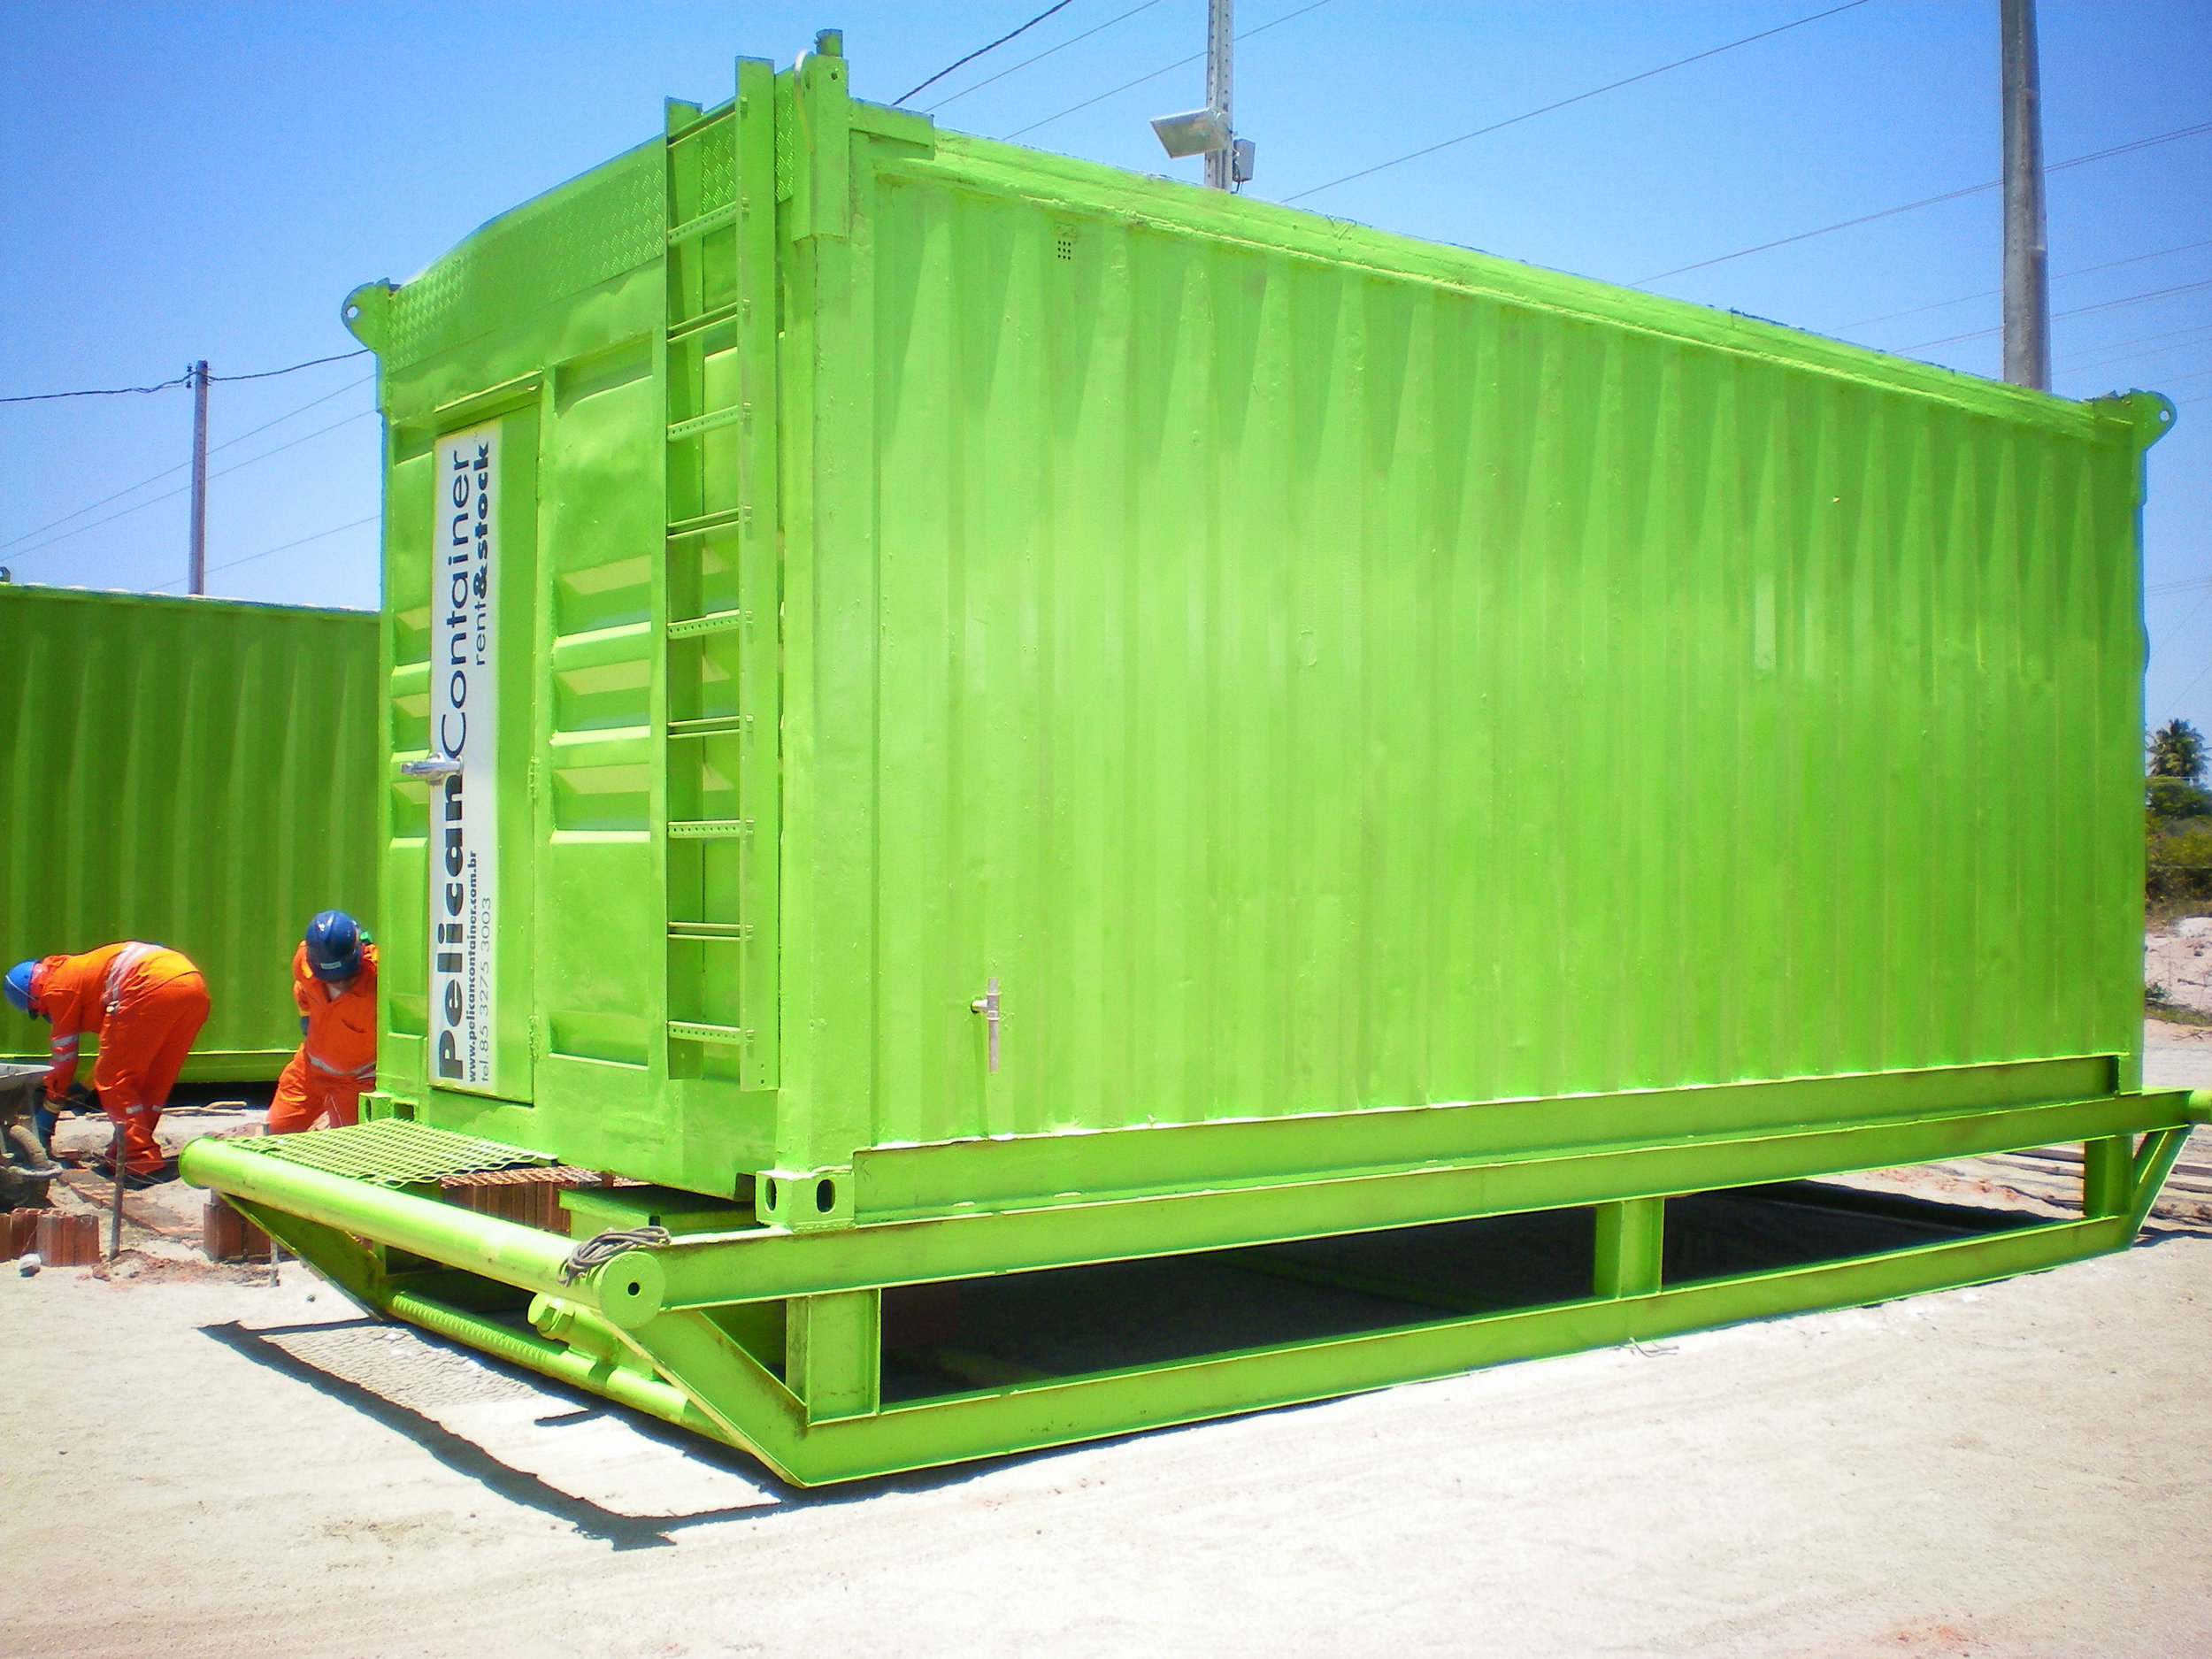 container_5_campo.jpg